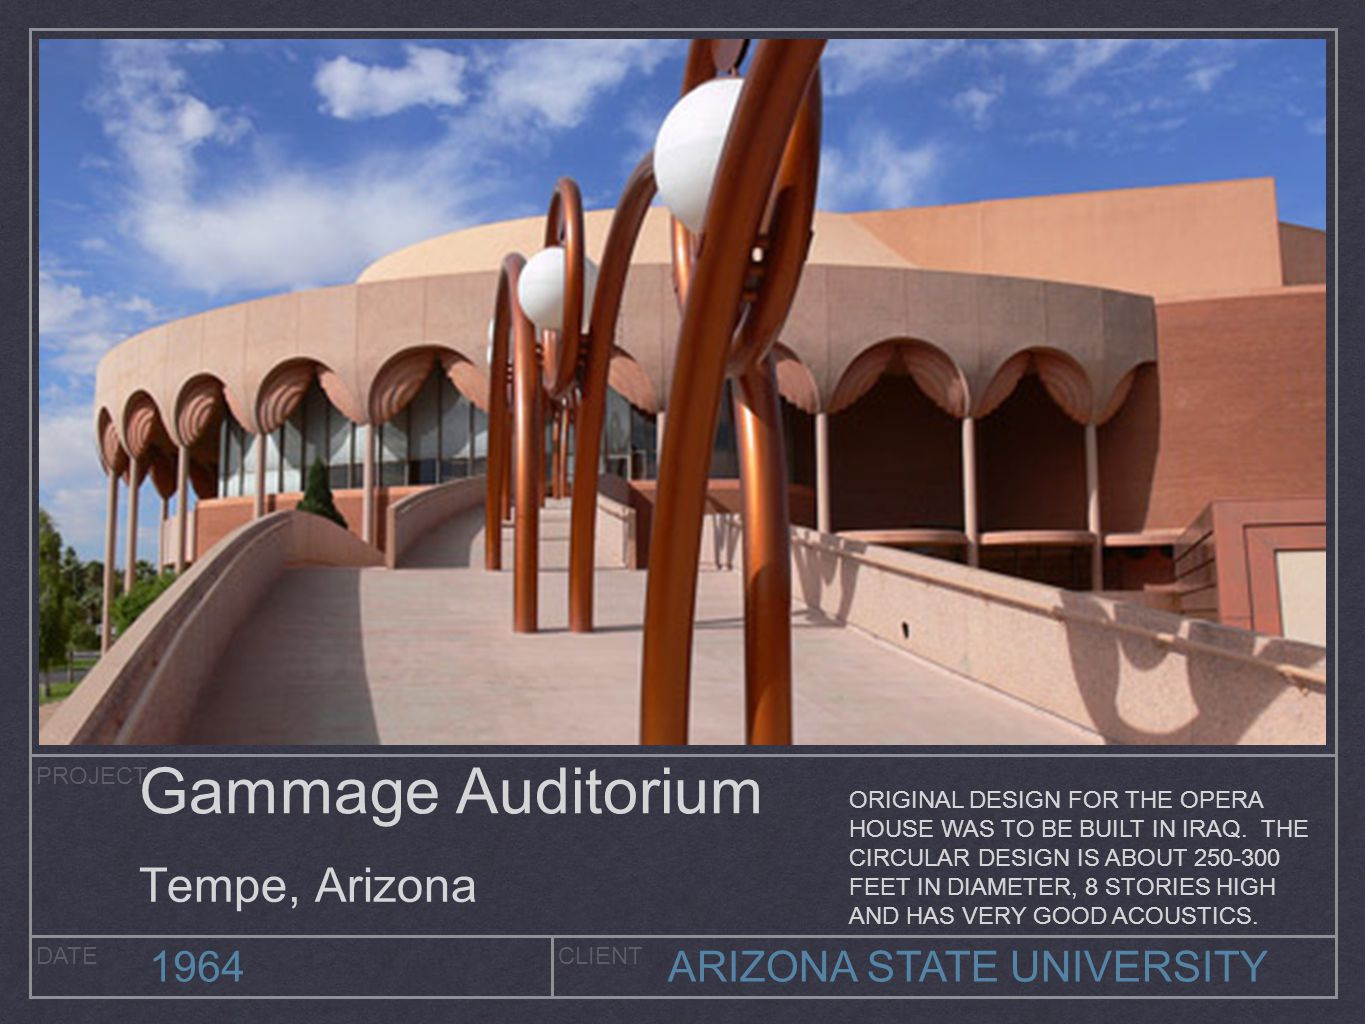 PROJECT DATECLIENT 1964ARIZONA STATE UNIVERSITY Gammage Auditorium Tempe, Arizona ORIGINAL DESIGN FOR THE OPERA HOUSE WAS TO BE BUILT IN IRAQ. THE CIR